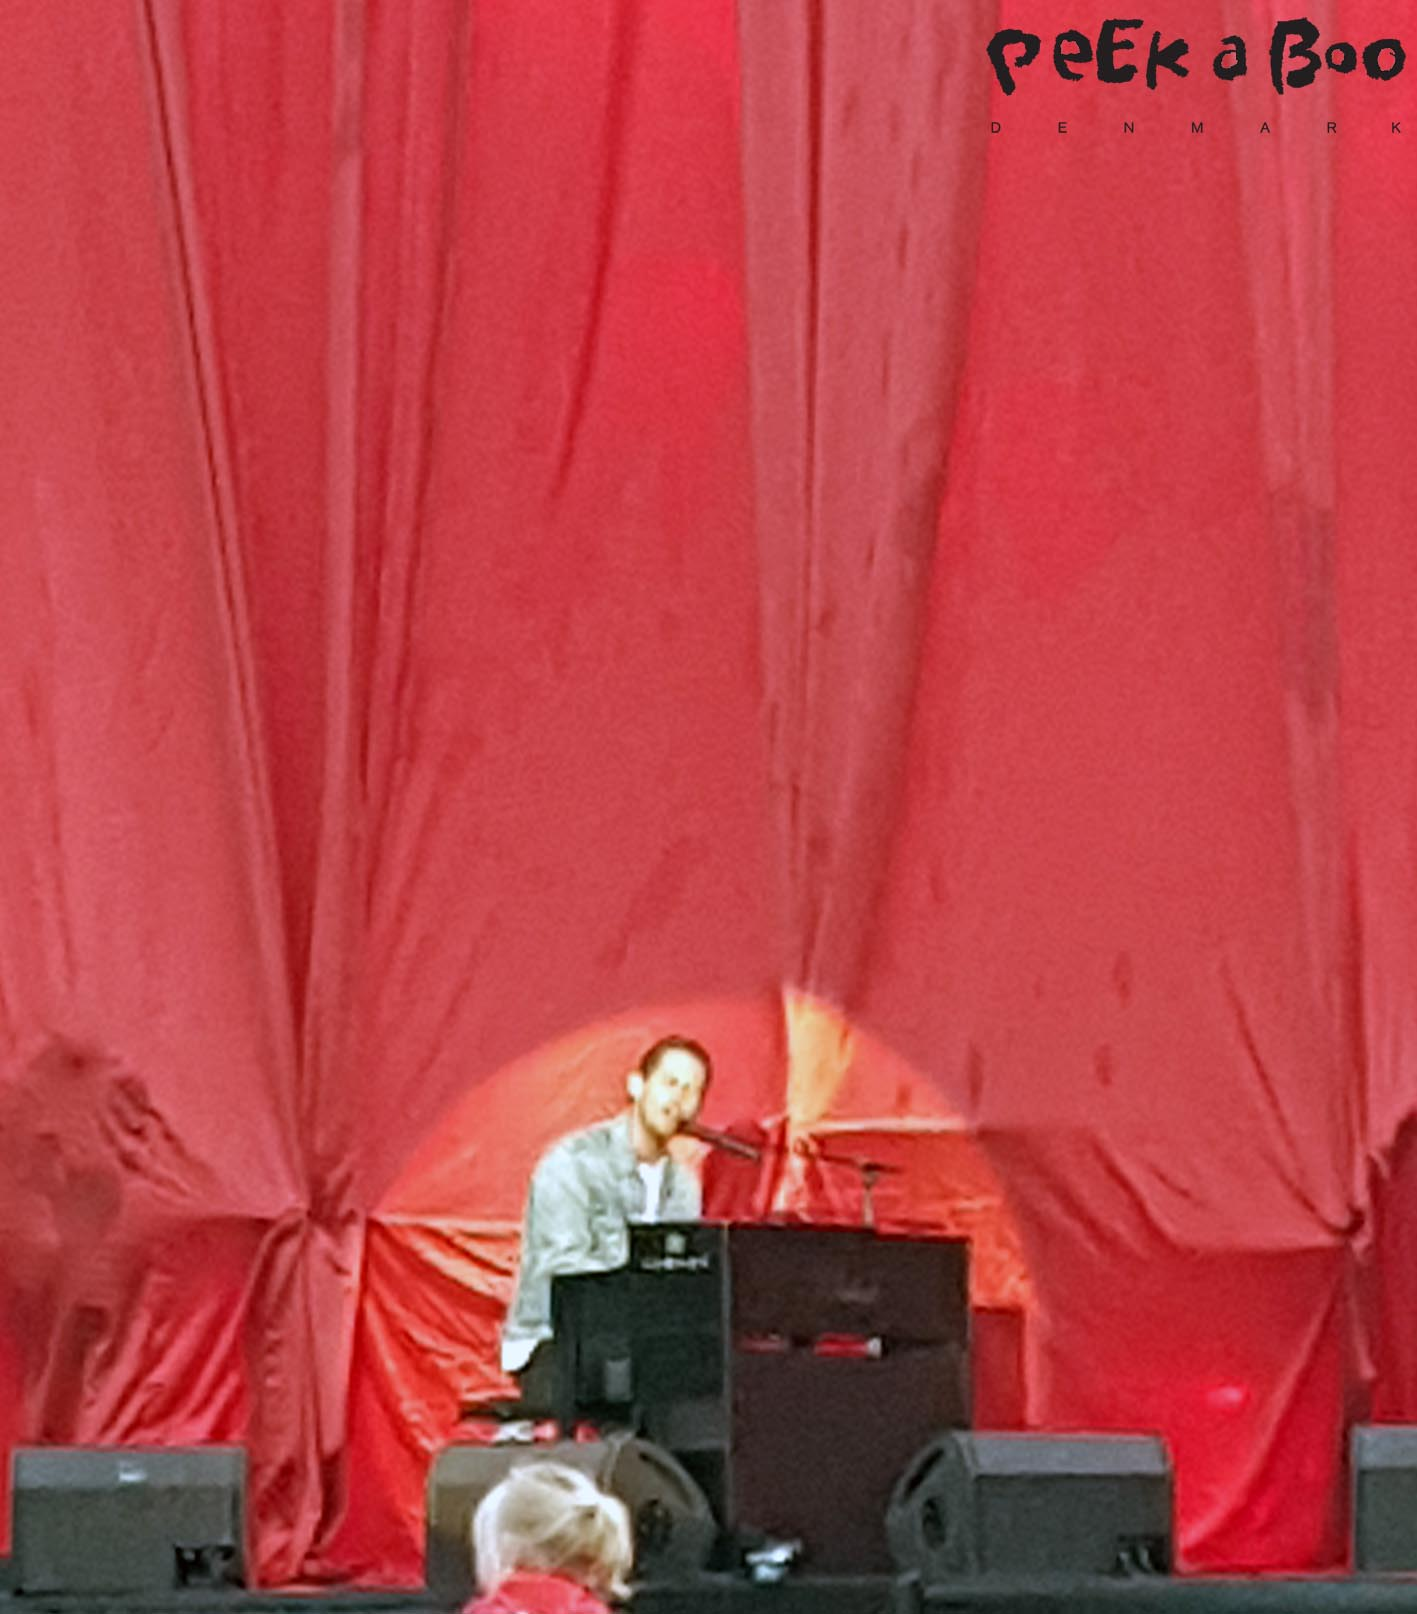 Rasmus Seebach started his concert solo with him singing and playing the piano.